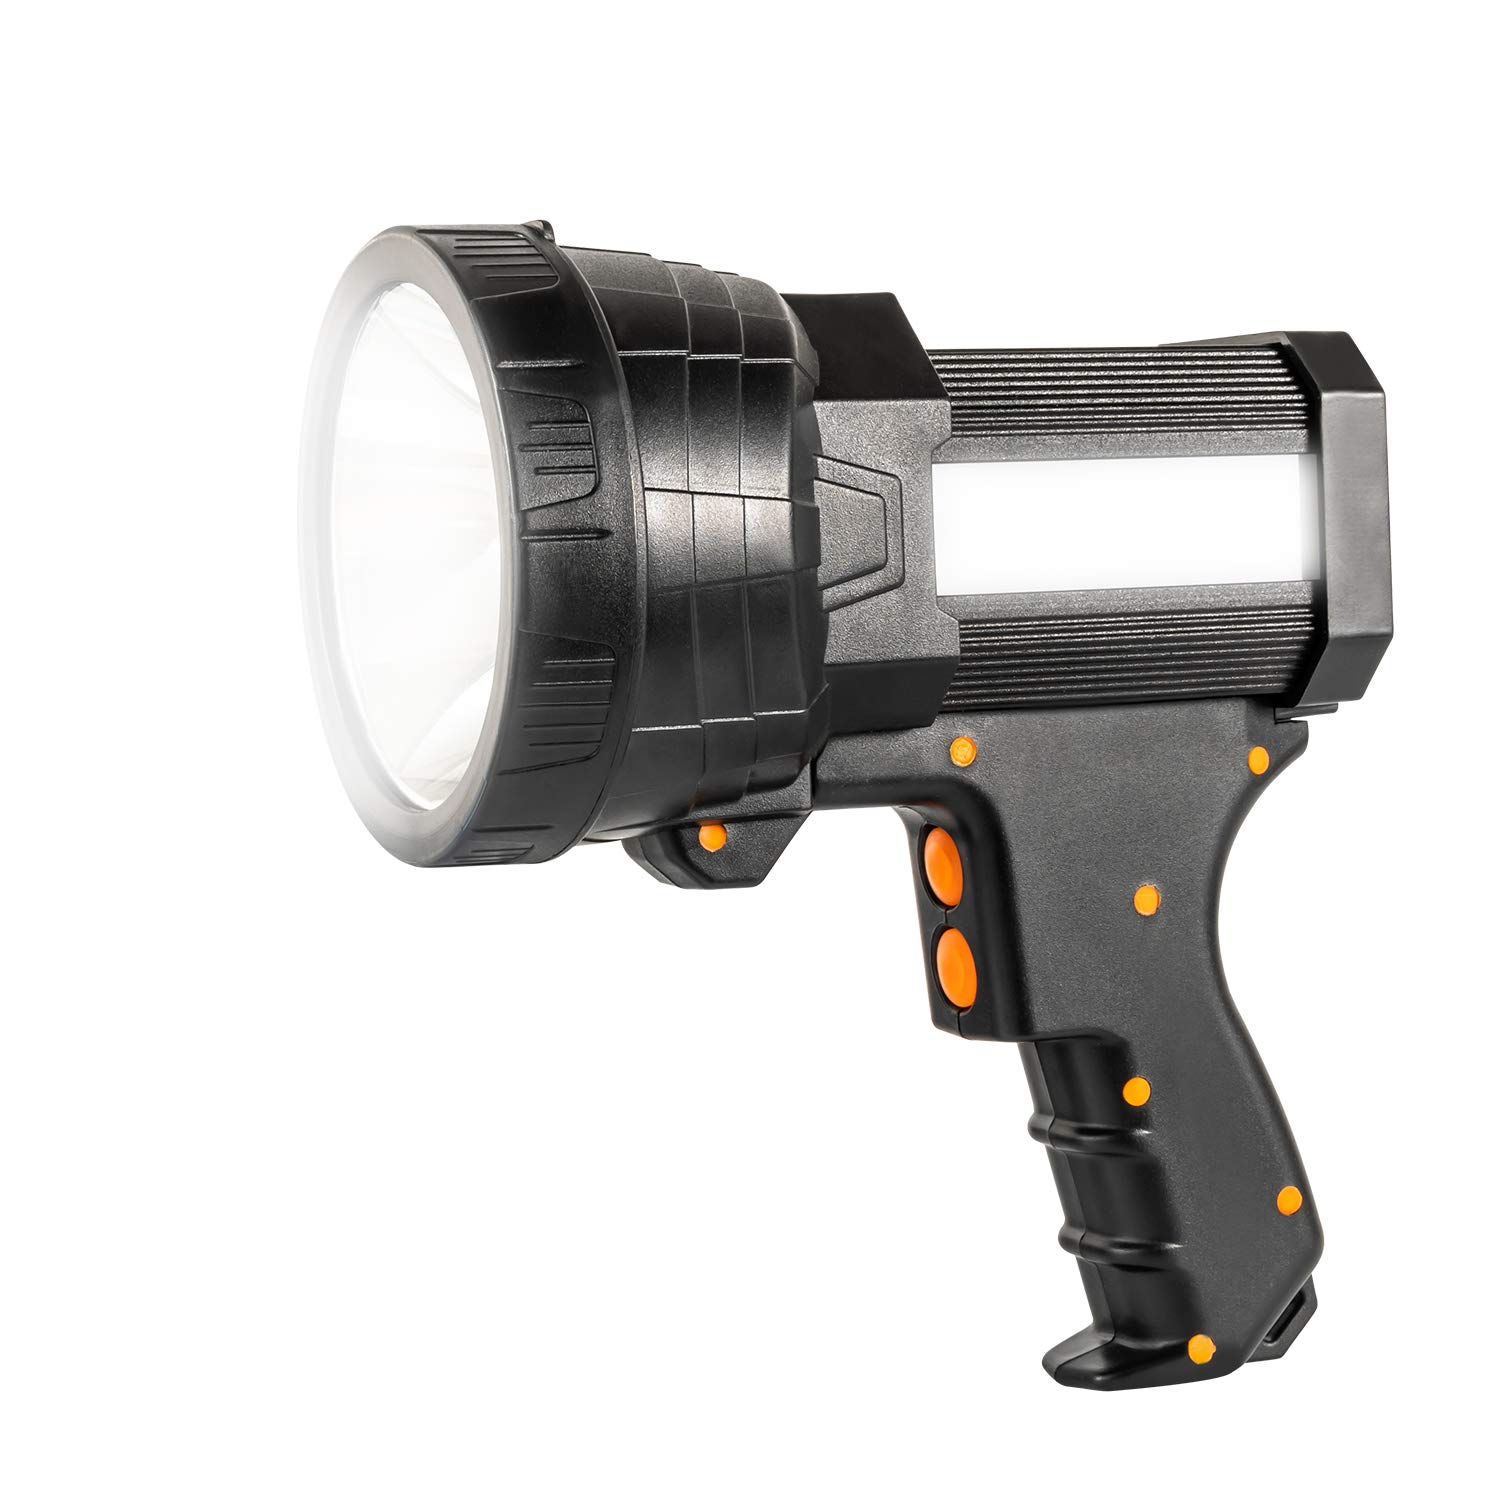 Super Bright Handheld Flashlight Rainproof Rechargeable Marine Spotlight with High Lumens CREE LED, 9600mAh Long Lasting Portable Searchlight Flood Light Side Tactical Torch with USB Output